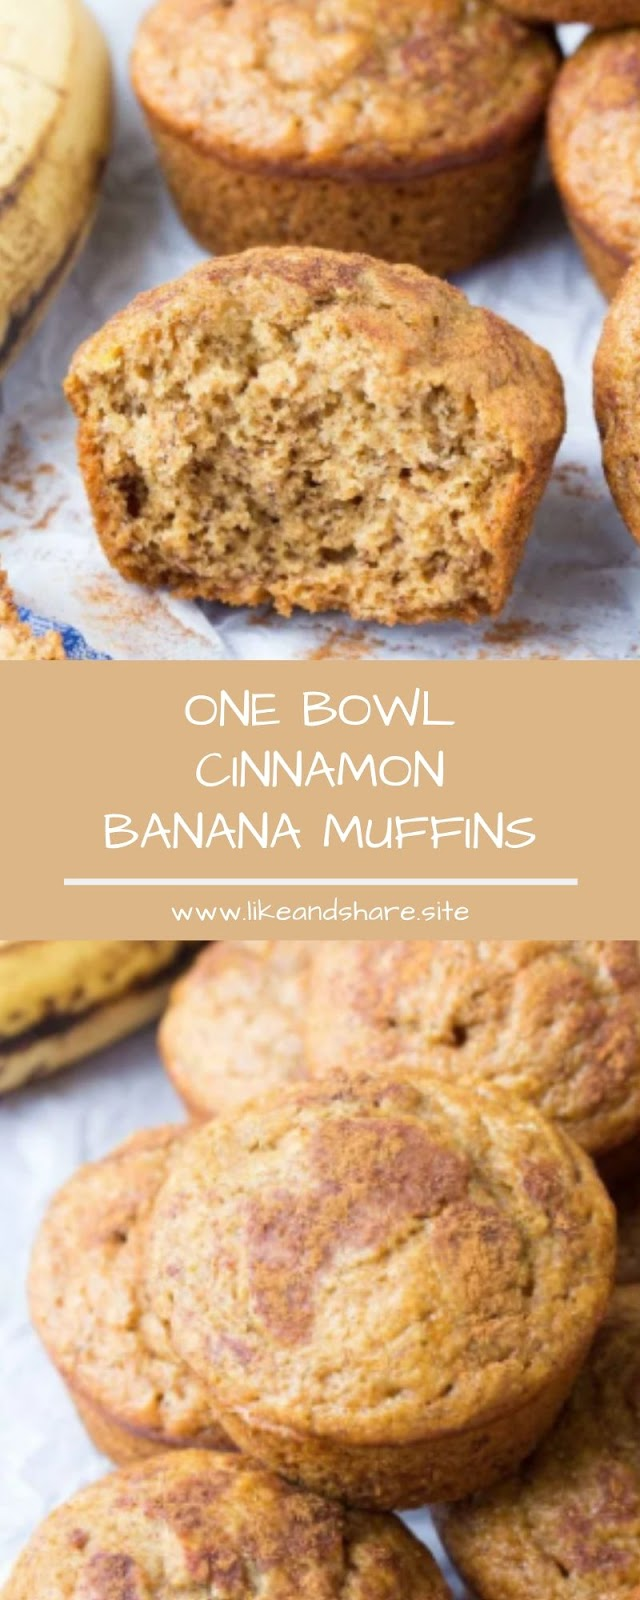 ONE BOWL CINNAMON BANANA MUFFINS